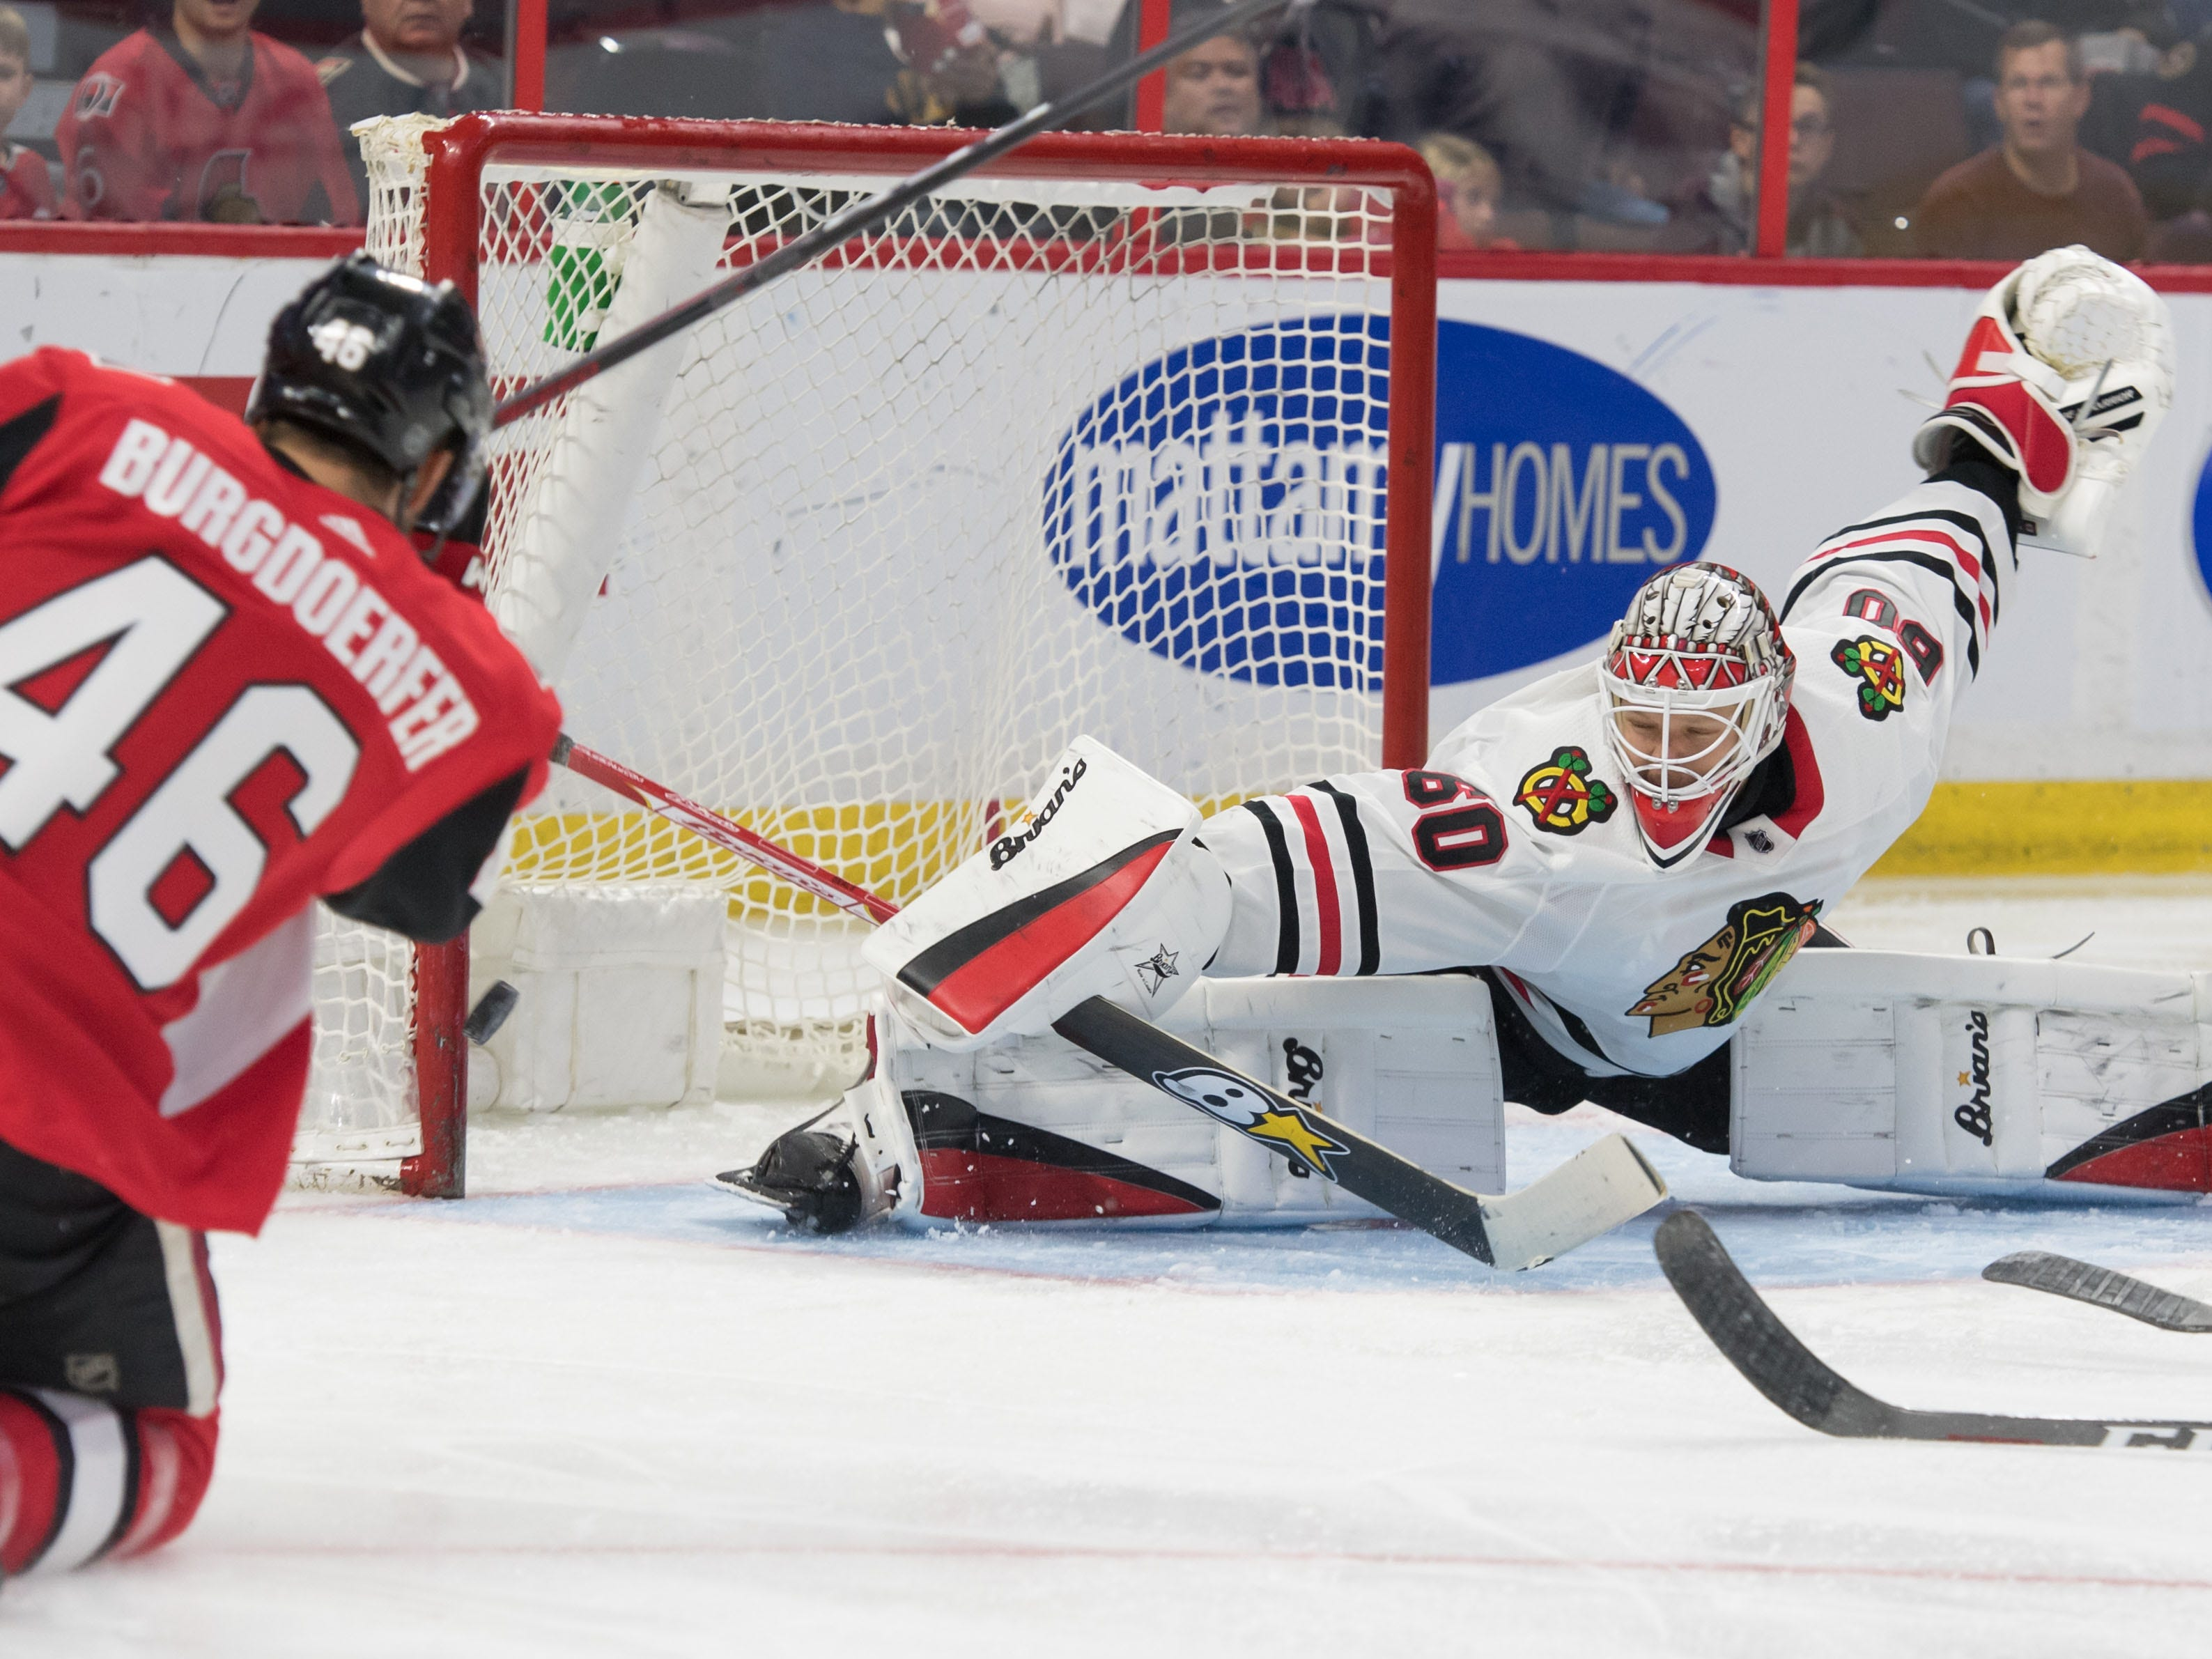 Sept. 21: Chicago Blackhawks goalie Collin Delia stretches to make a save on a shot from Ottawa Senators defenseman Eric Burgdoerfer.